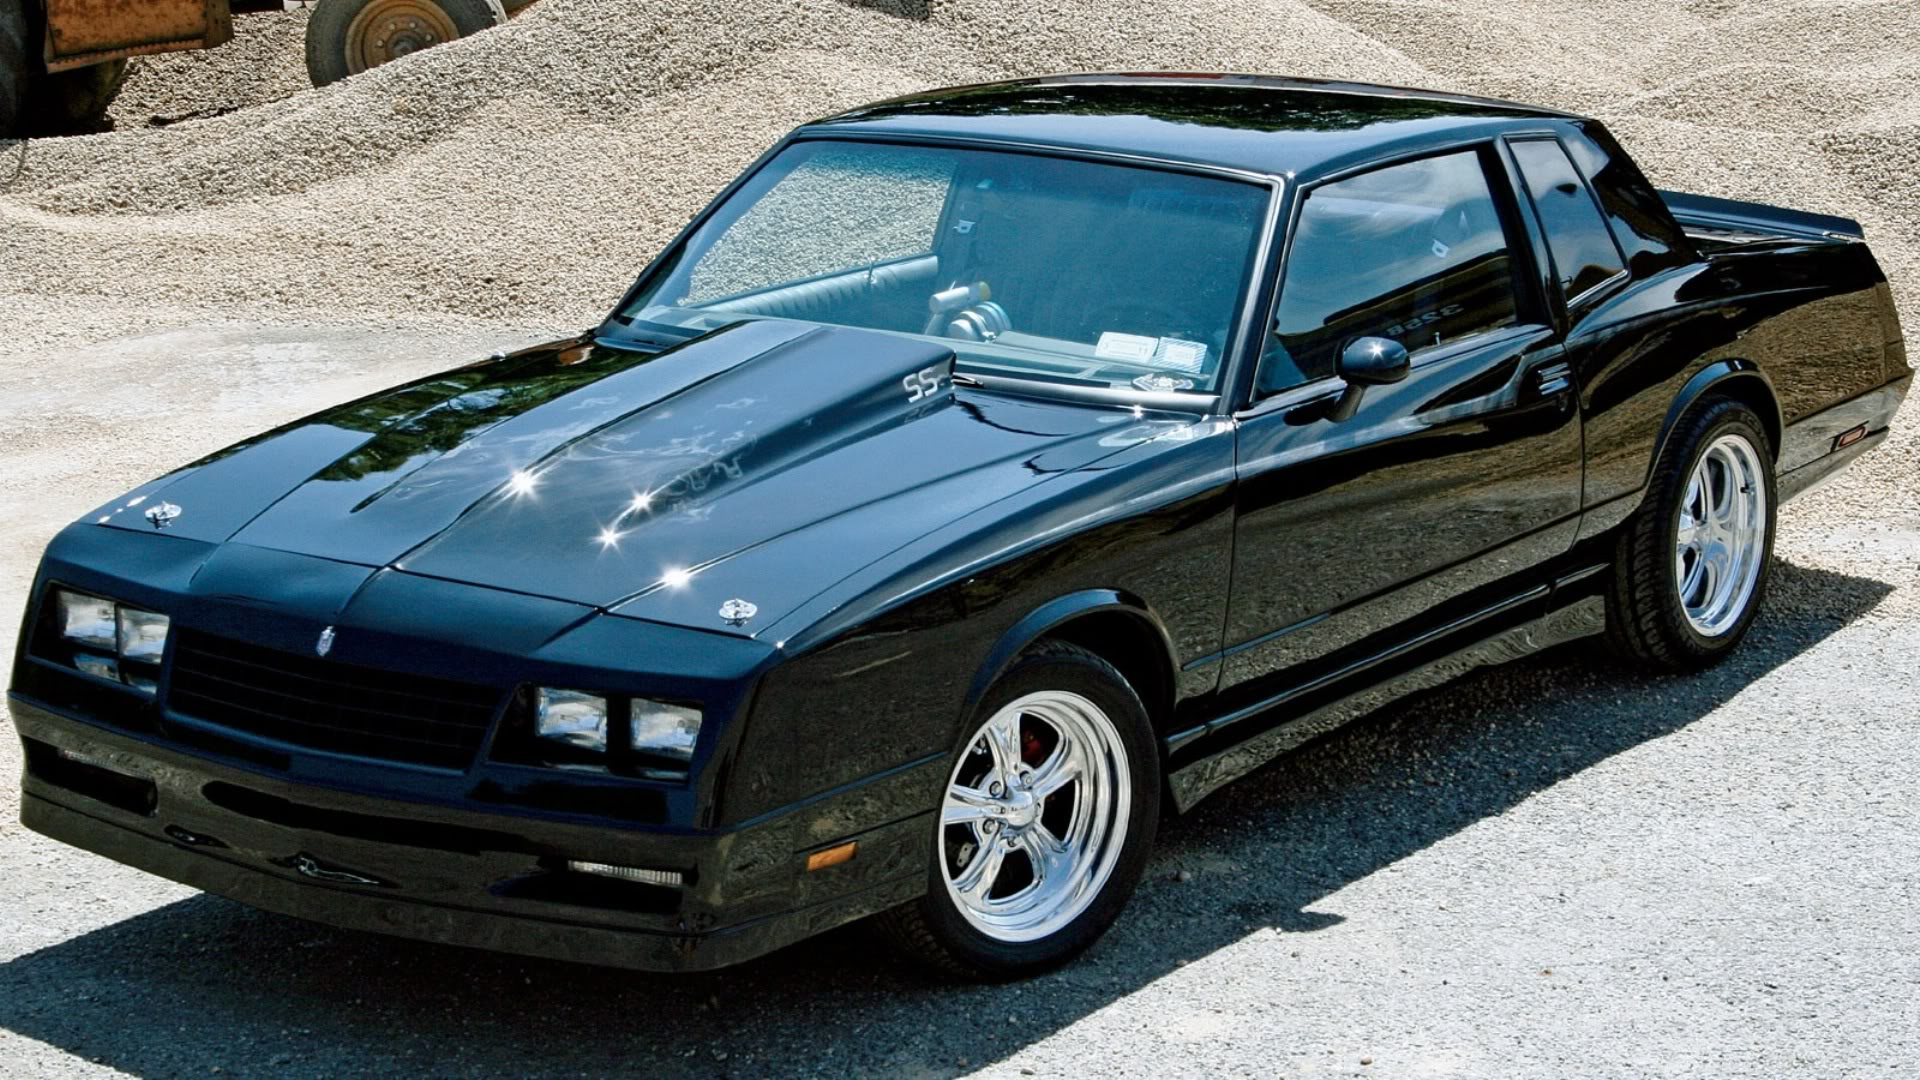 Chevrolet Monte Carlo SS image #8